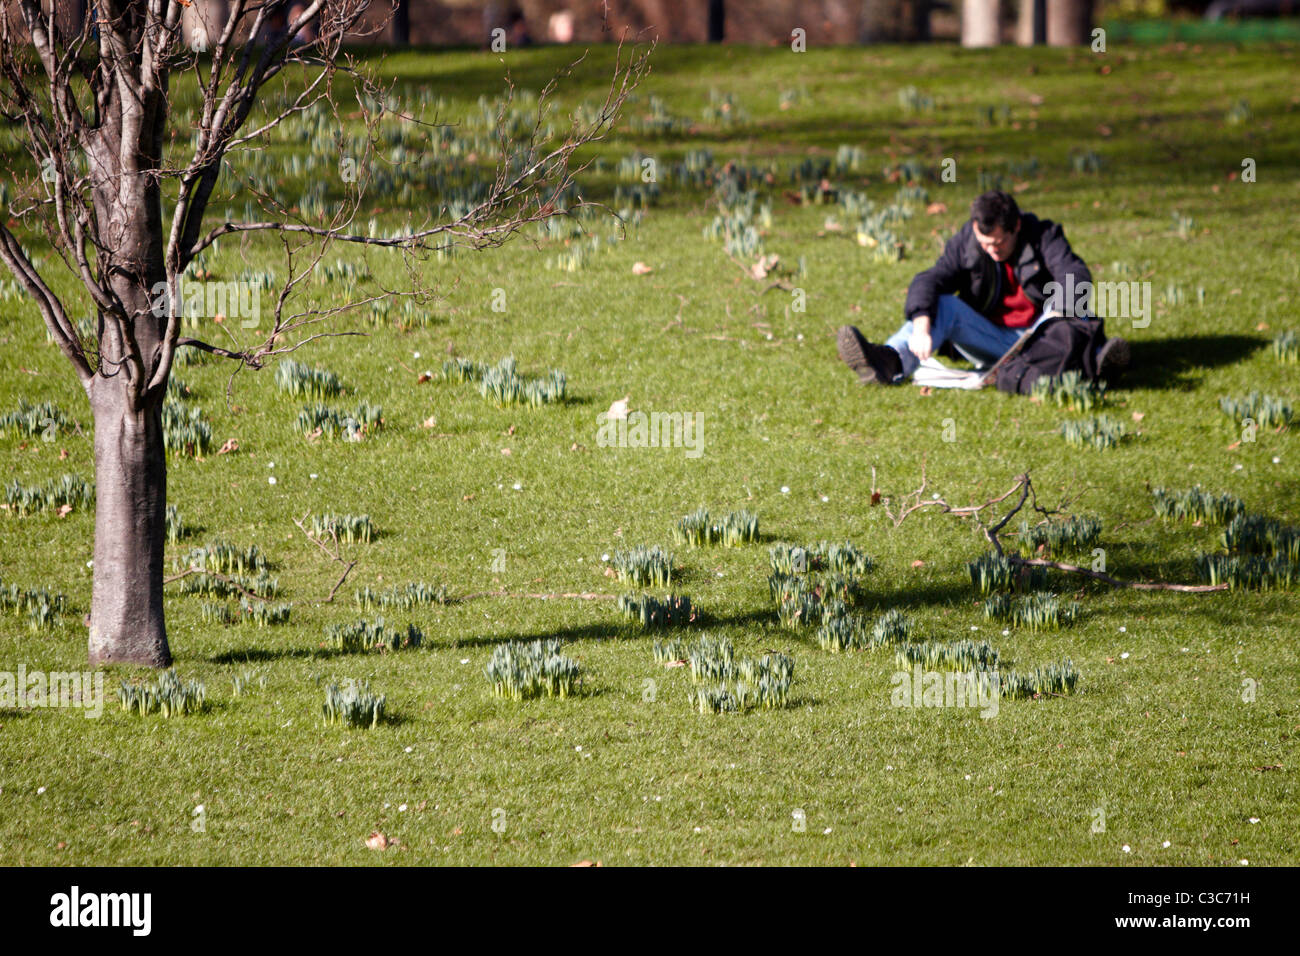 Man reads in Green Park London during unseasonal warm February weather - Stock Image